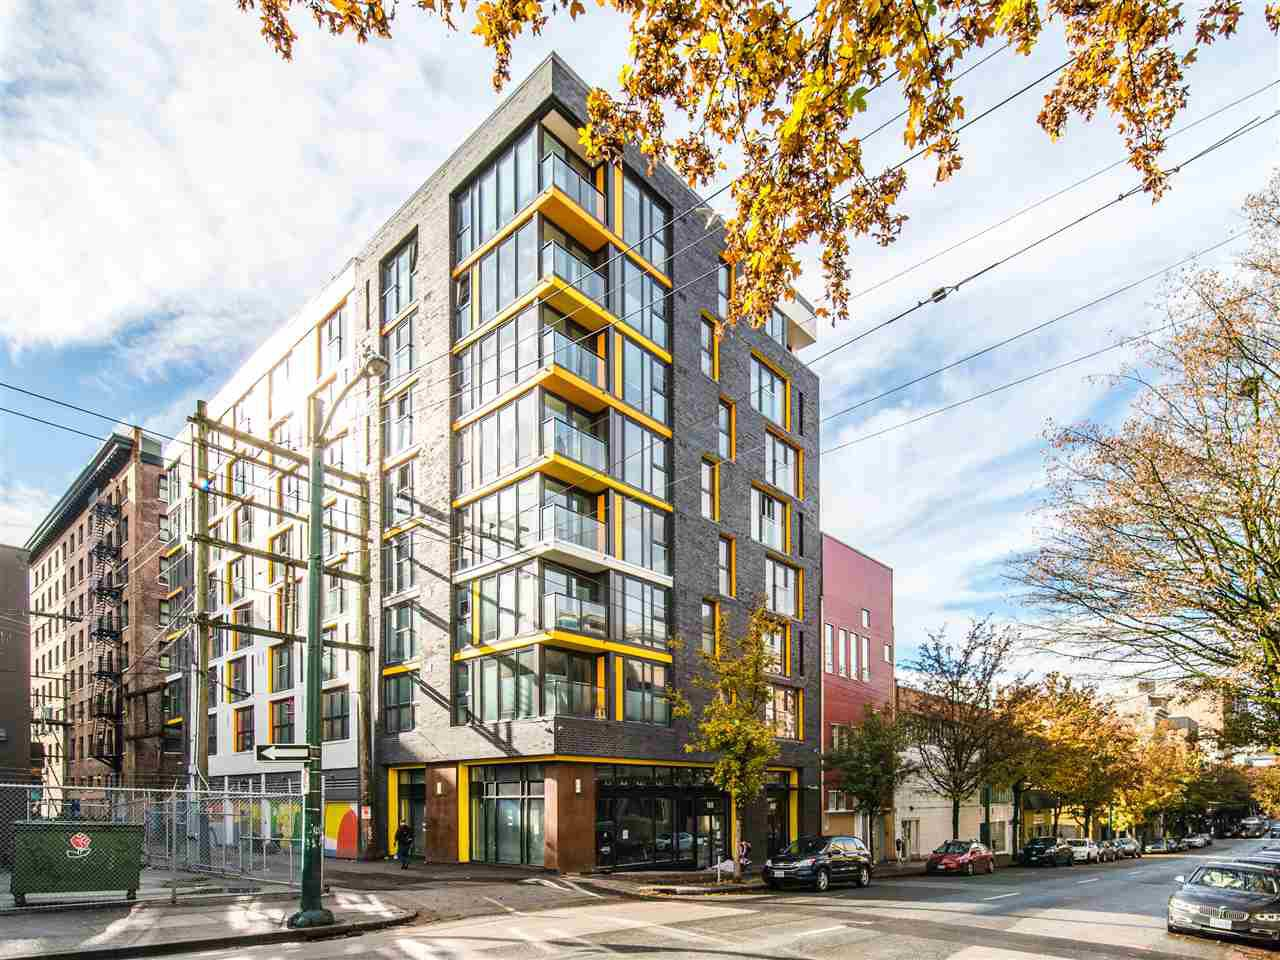 """Main Photo: 605 150 E CORDOVA Street in Vancouver: Downtown VE Condo for sale in """"InGastown"""" (Vancouver East)  : MLS®# R2361641"""